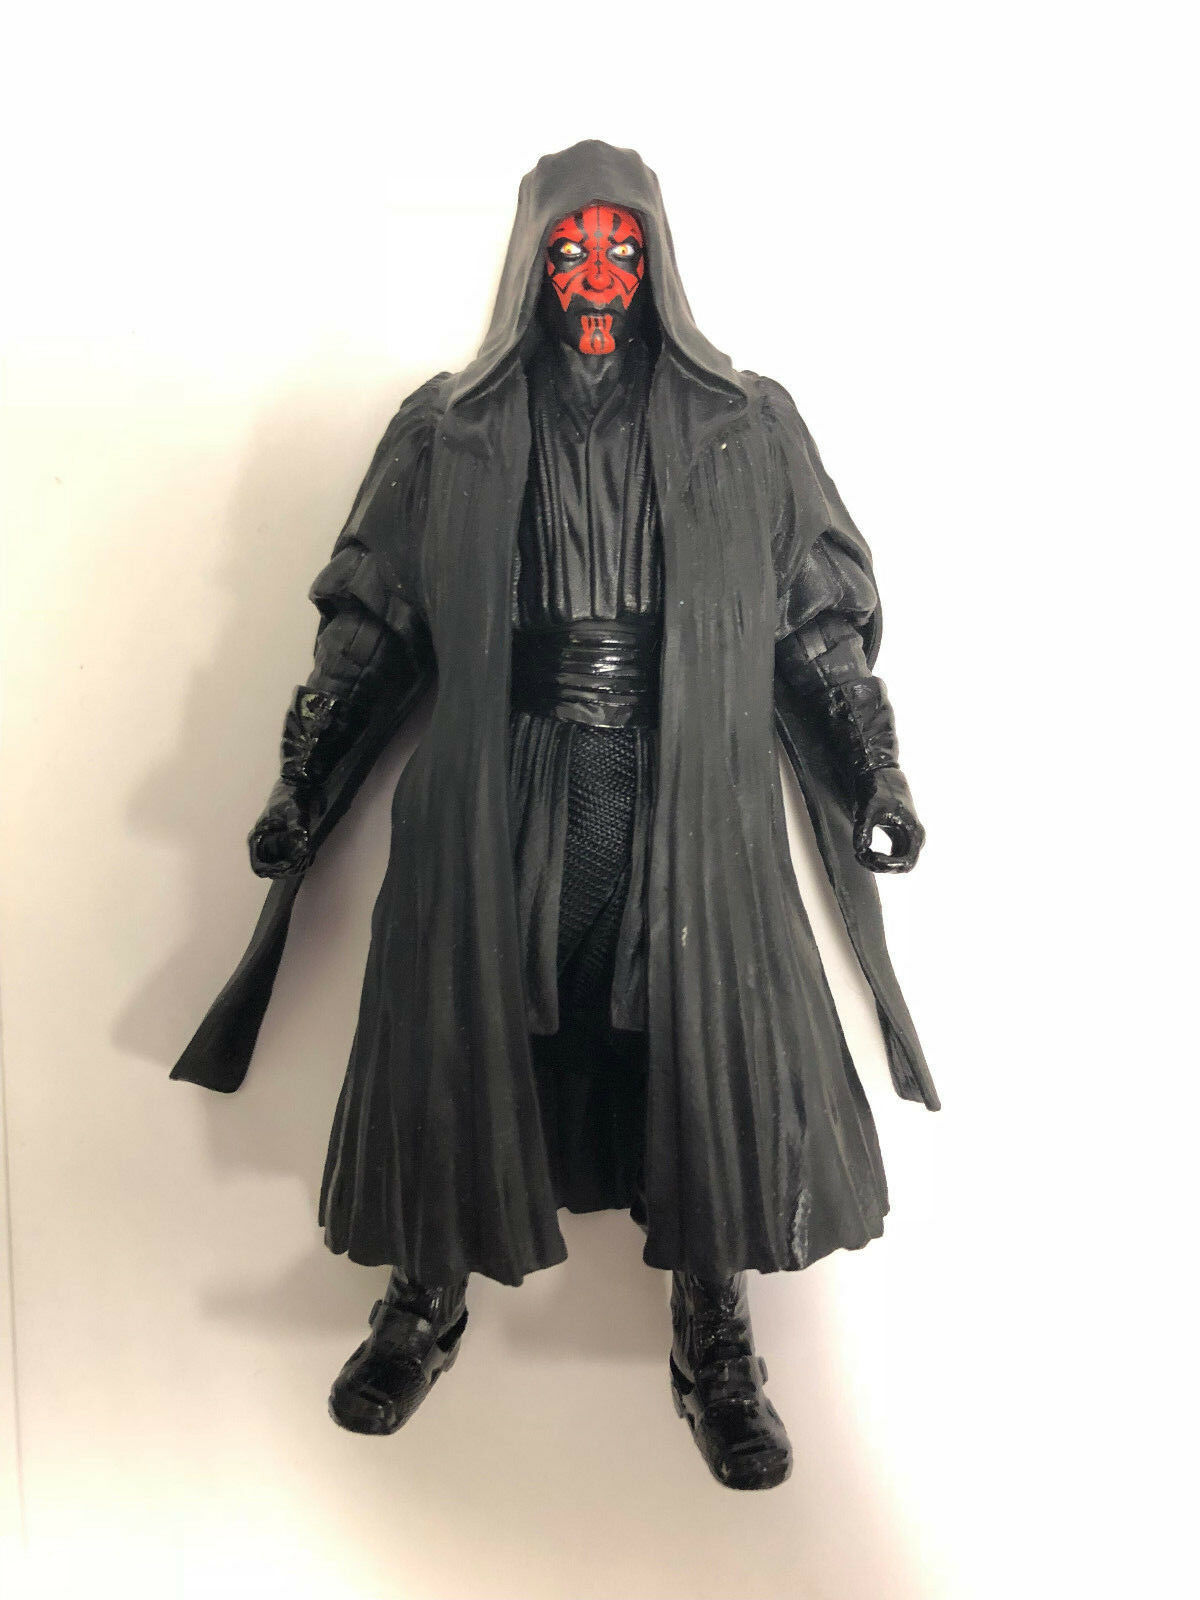 StarWars collection : Star Wars Série Noire 15.2cm Darth Maul Figurine Hasbro 2013